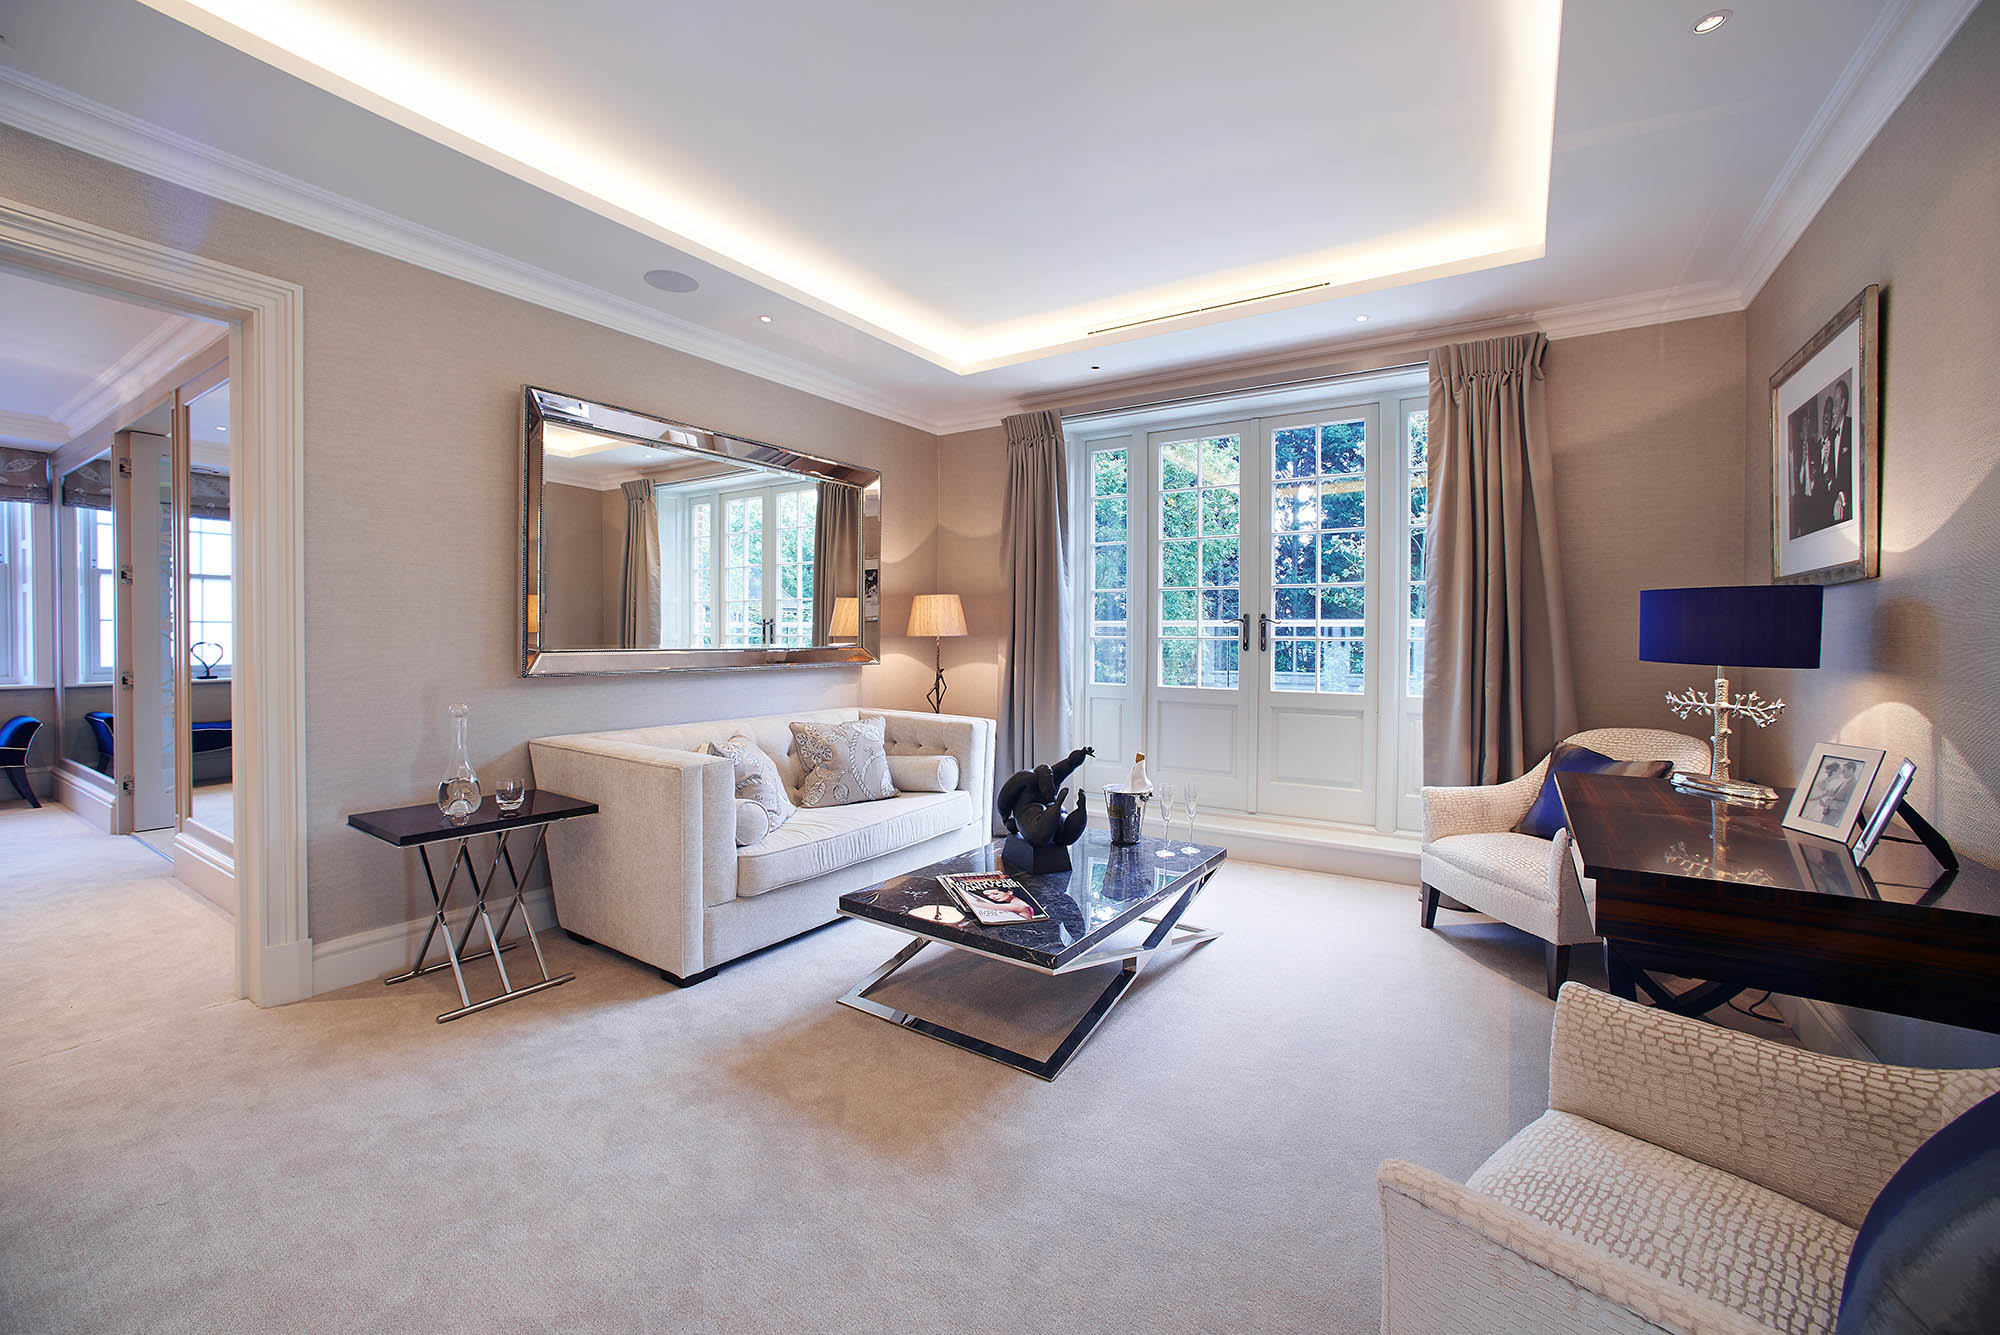 Sitting Area with french doors for luxury Surrey home renovation